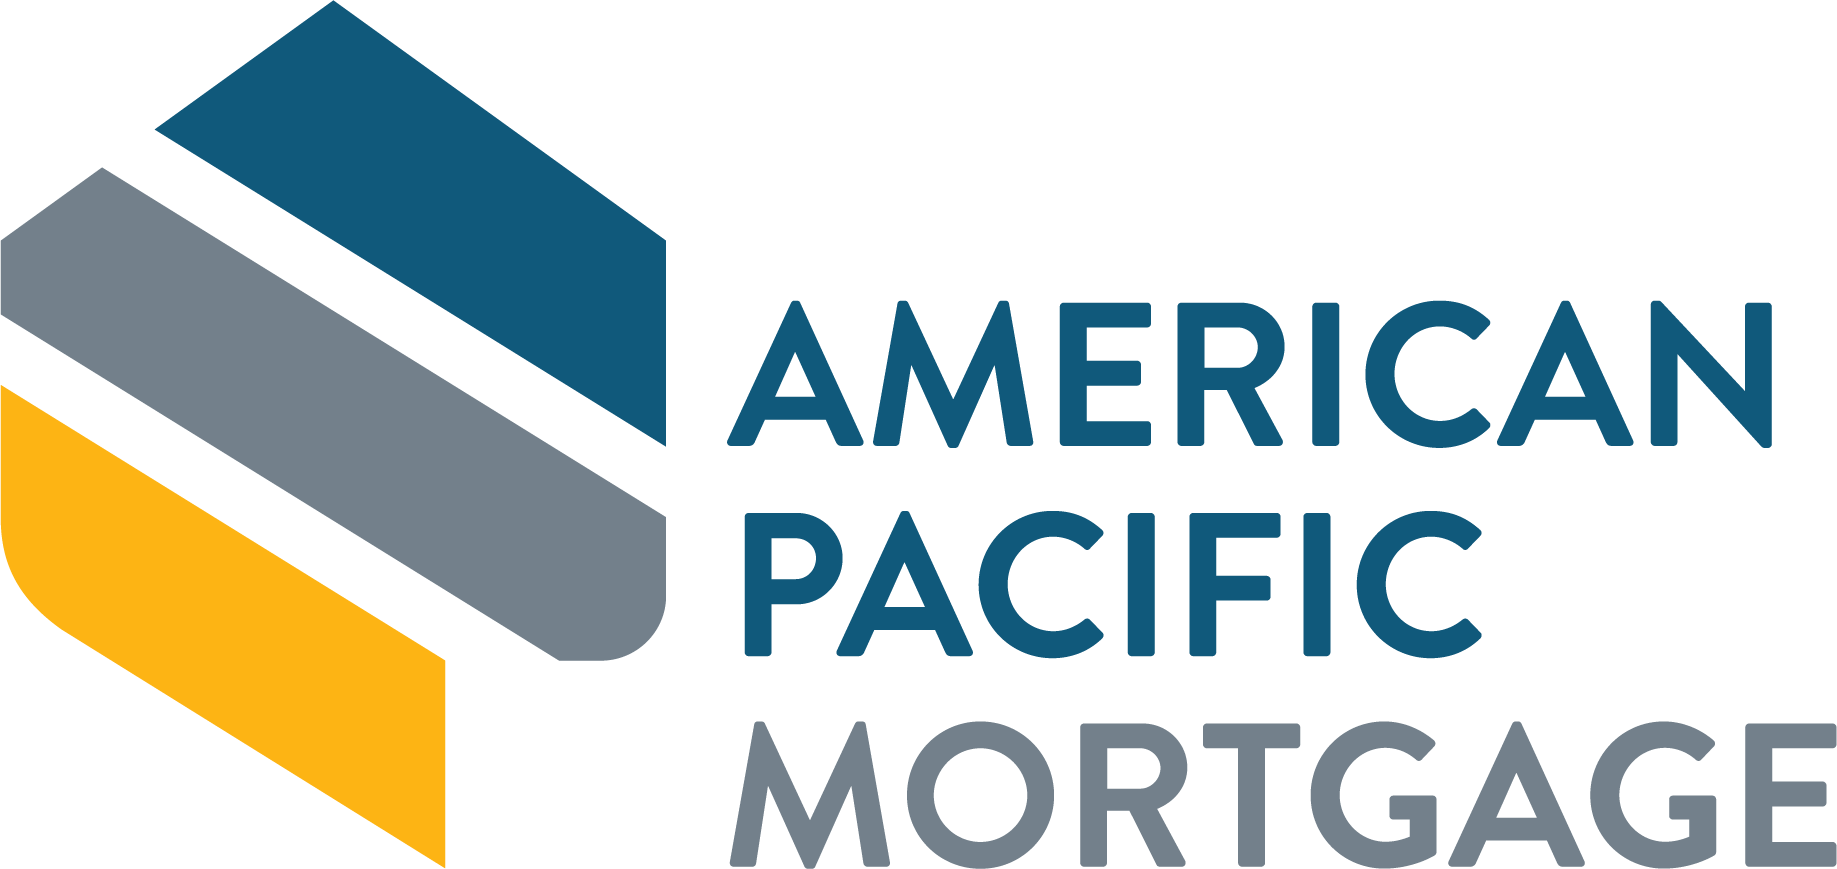 american-pacific-mortgage-logo